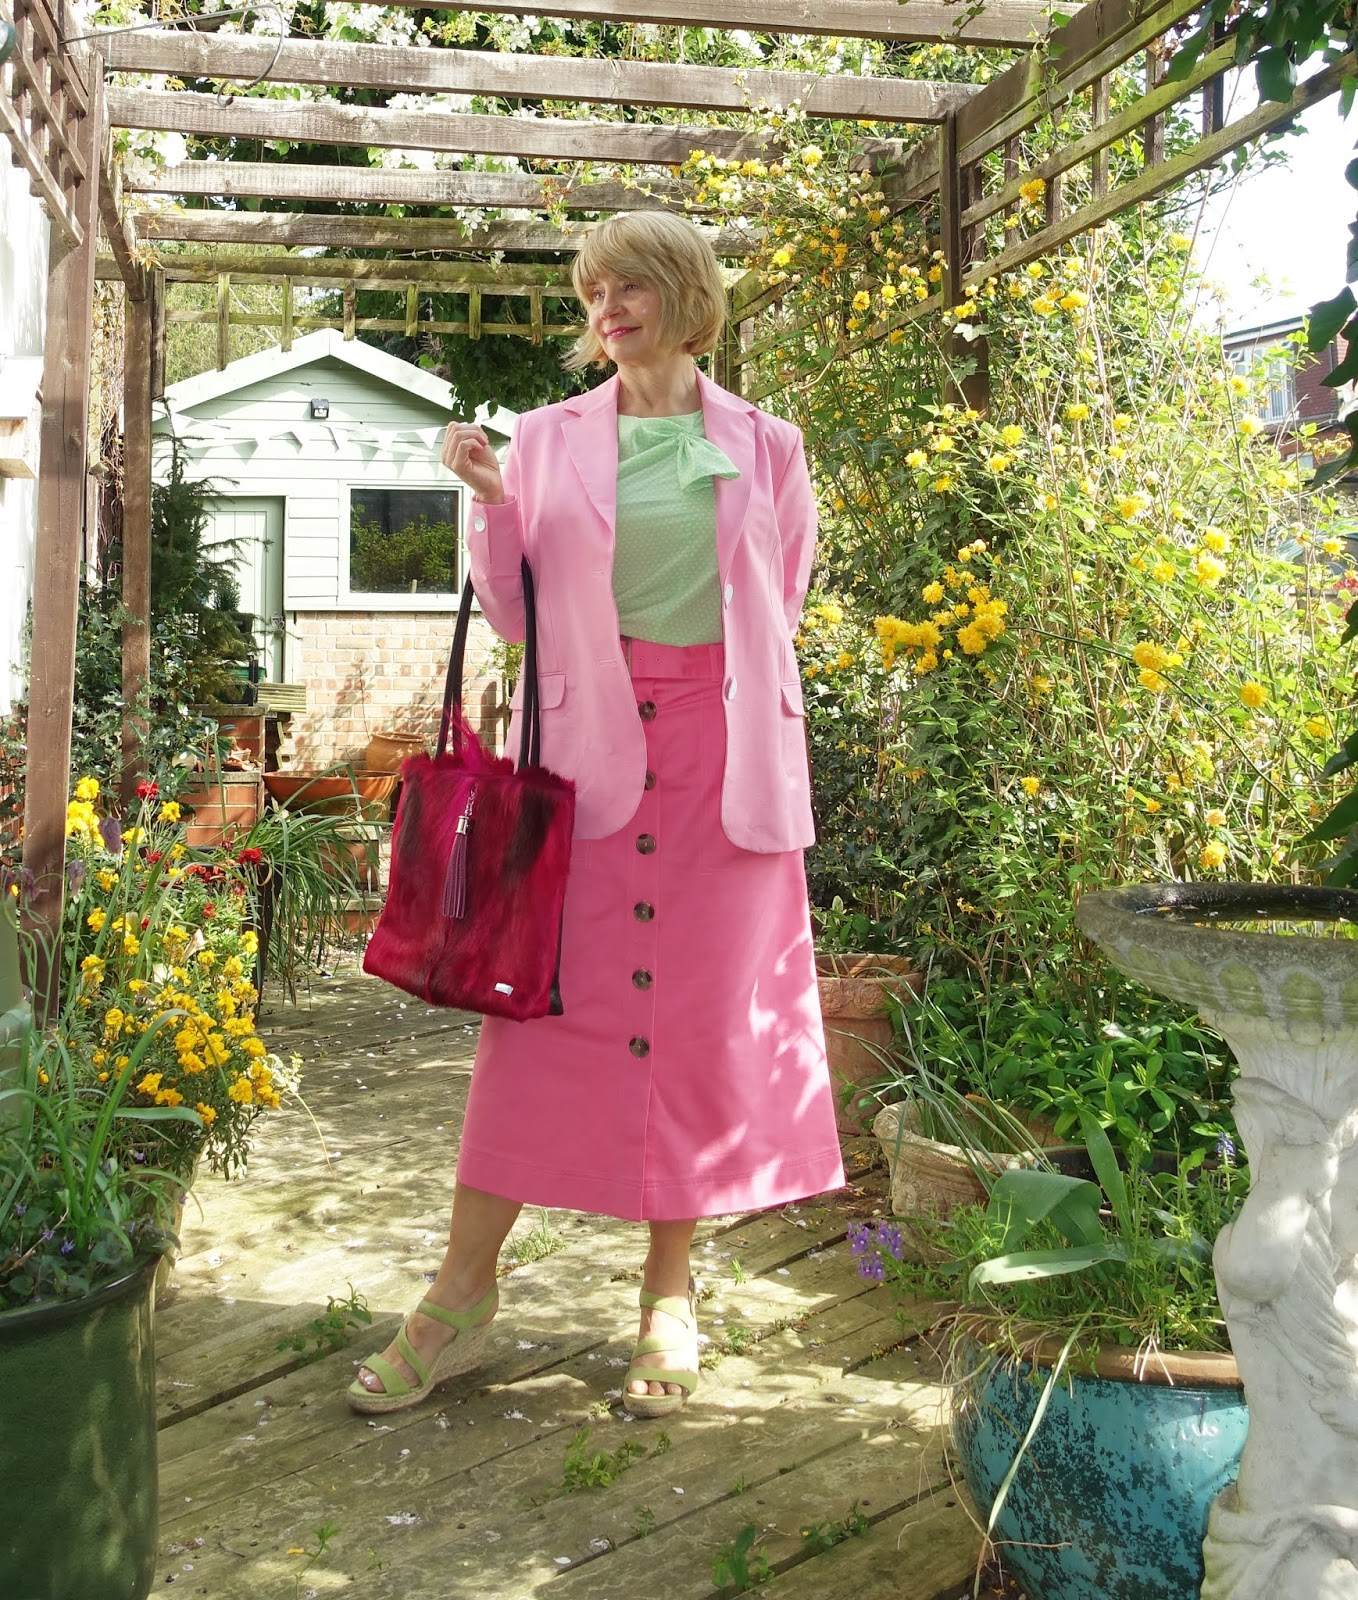 Different shades of pink worn together: midi skirt with jacket and light green top and wedges with a statement deep pink tote bag